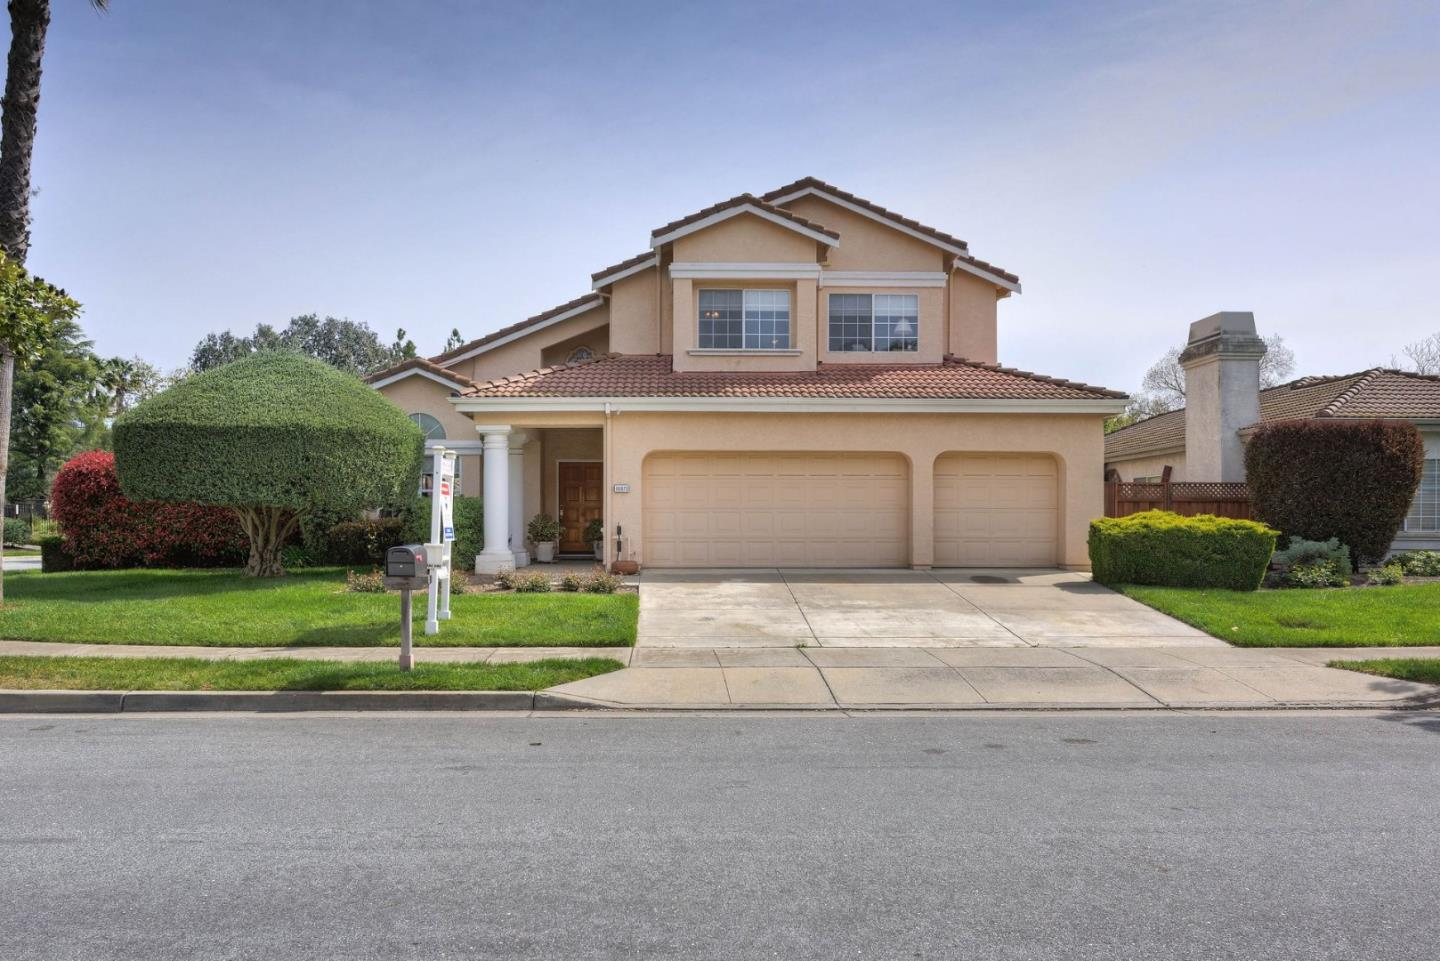 16970 Malaga DR, Morgan Hill in Santa Clara County, CA 95037 Home for Sale